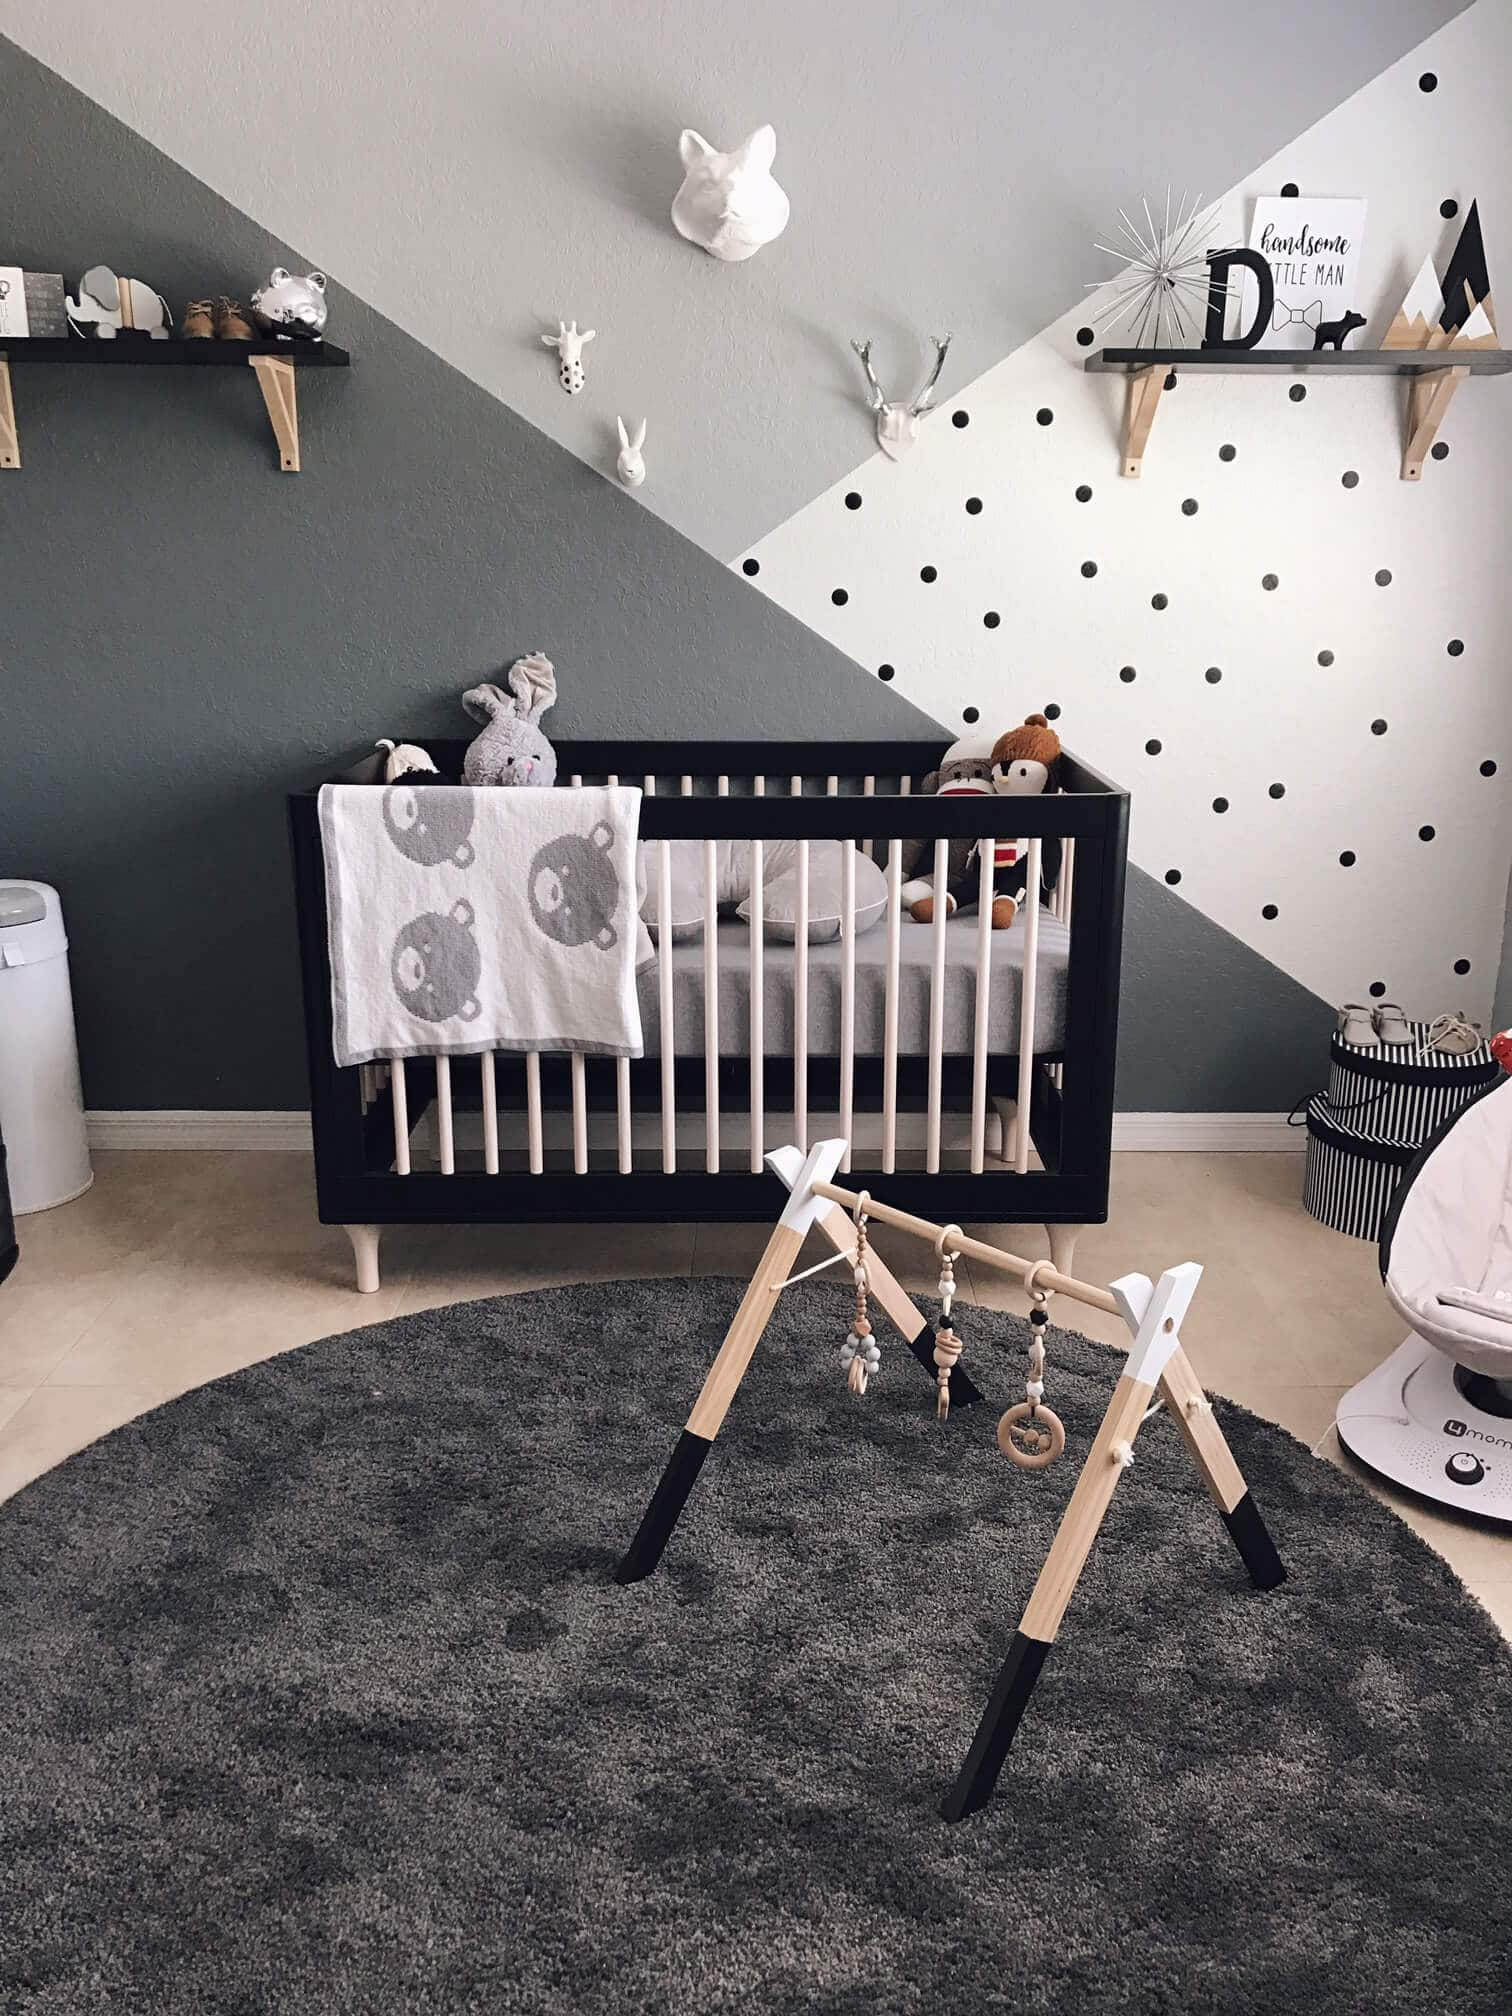 Check out this gender neutral monochrome zoo nursery on project nursery